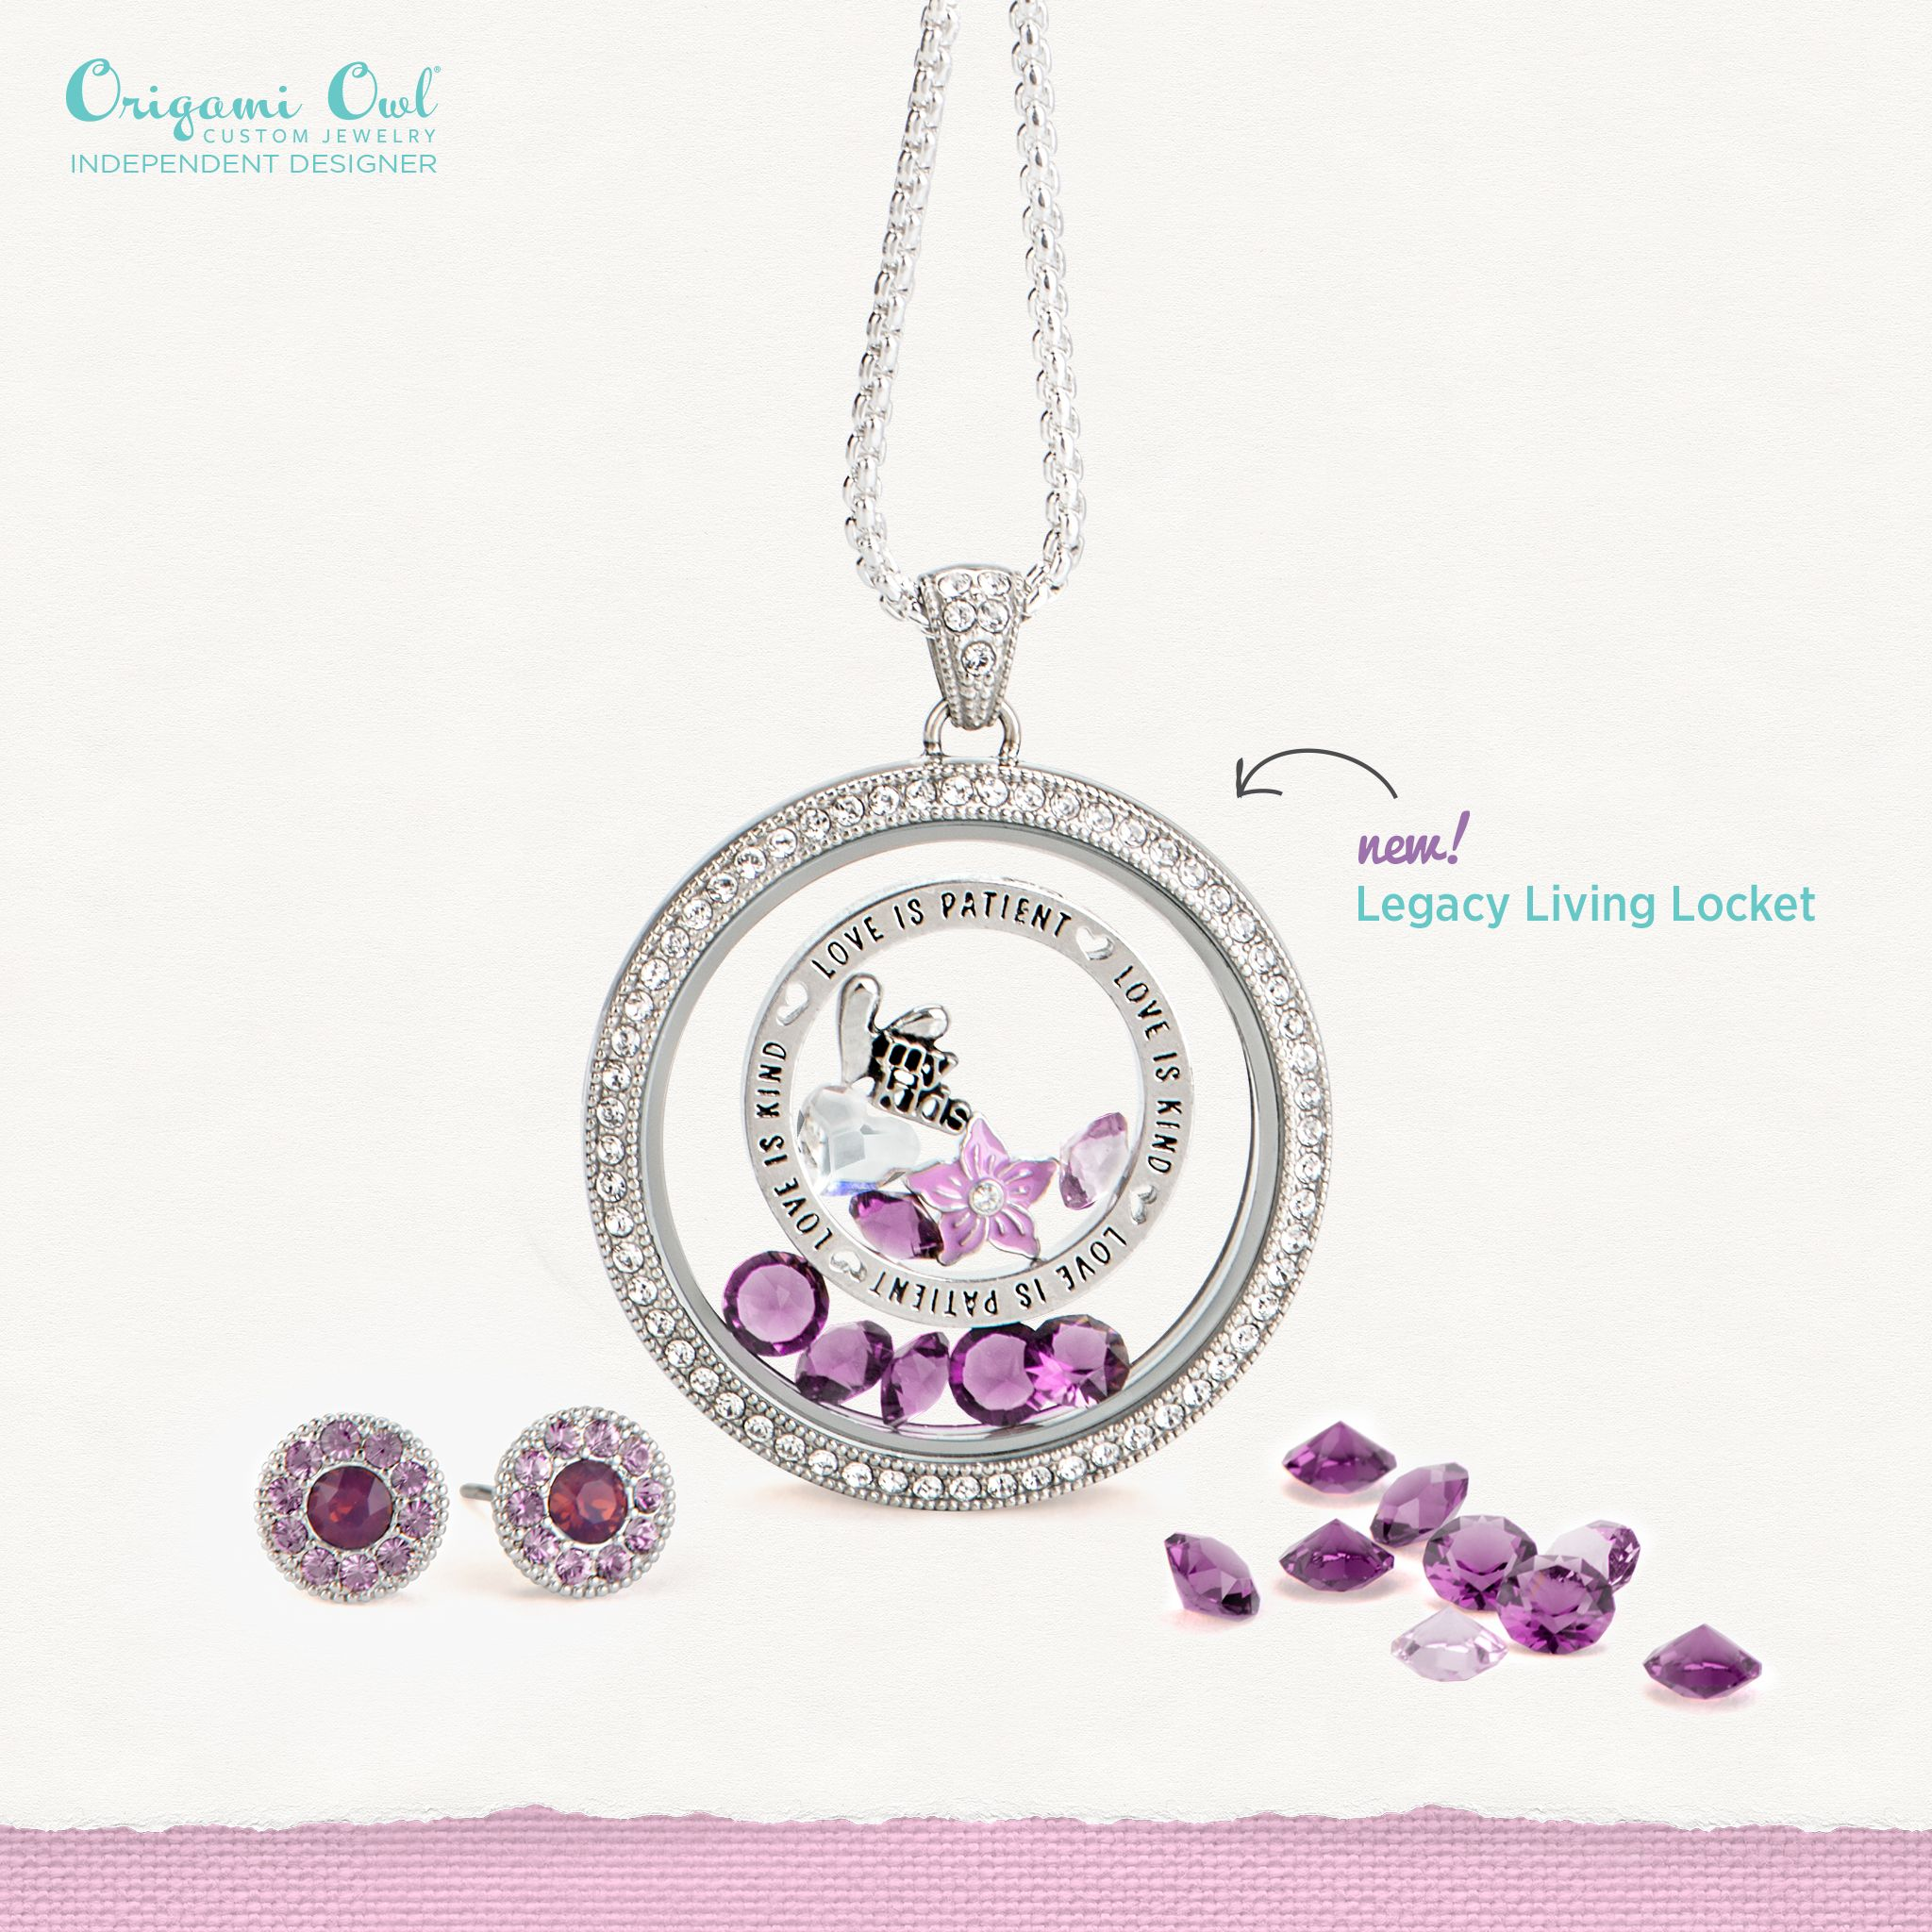 Origami Owl Mother's Day 2016 NEW Legacy Locket Living ... - photo#12